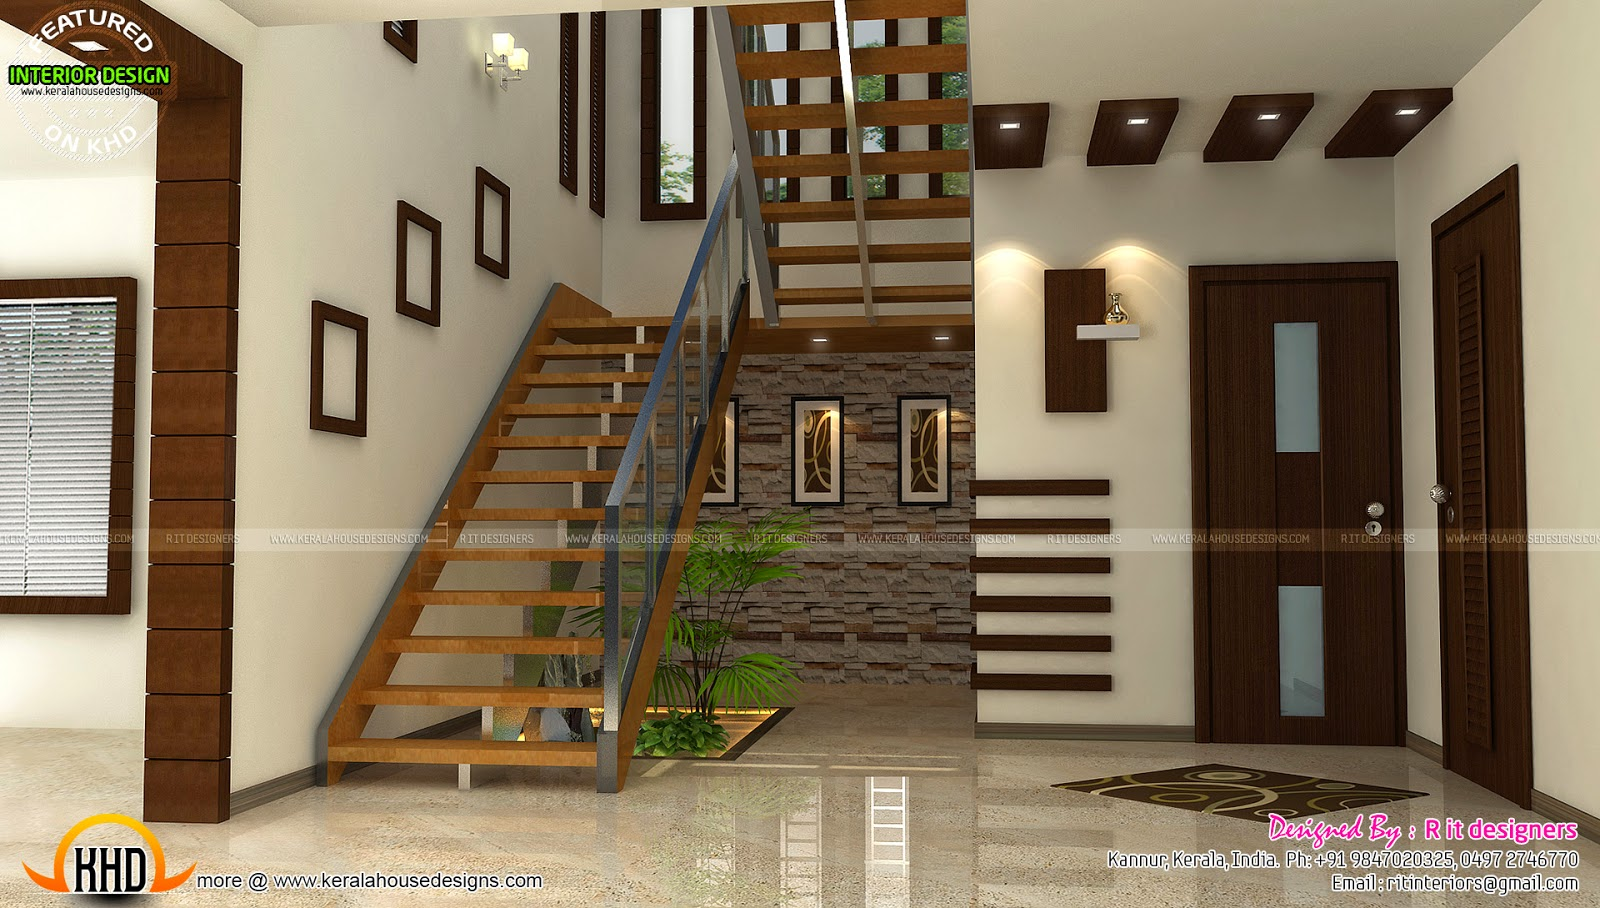 info about these interior designs contact r it designers home design